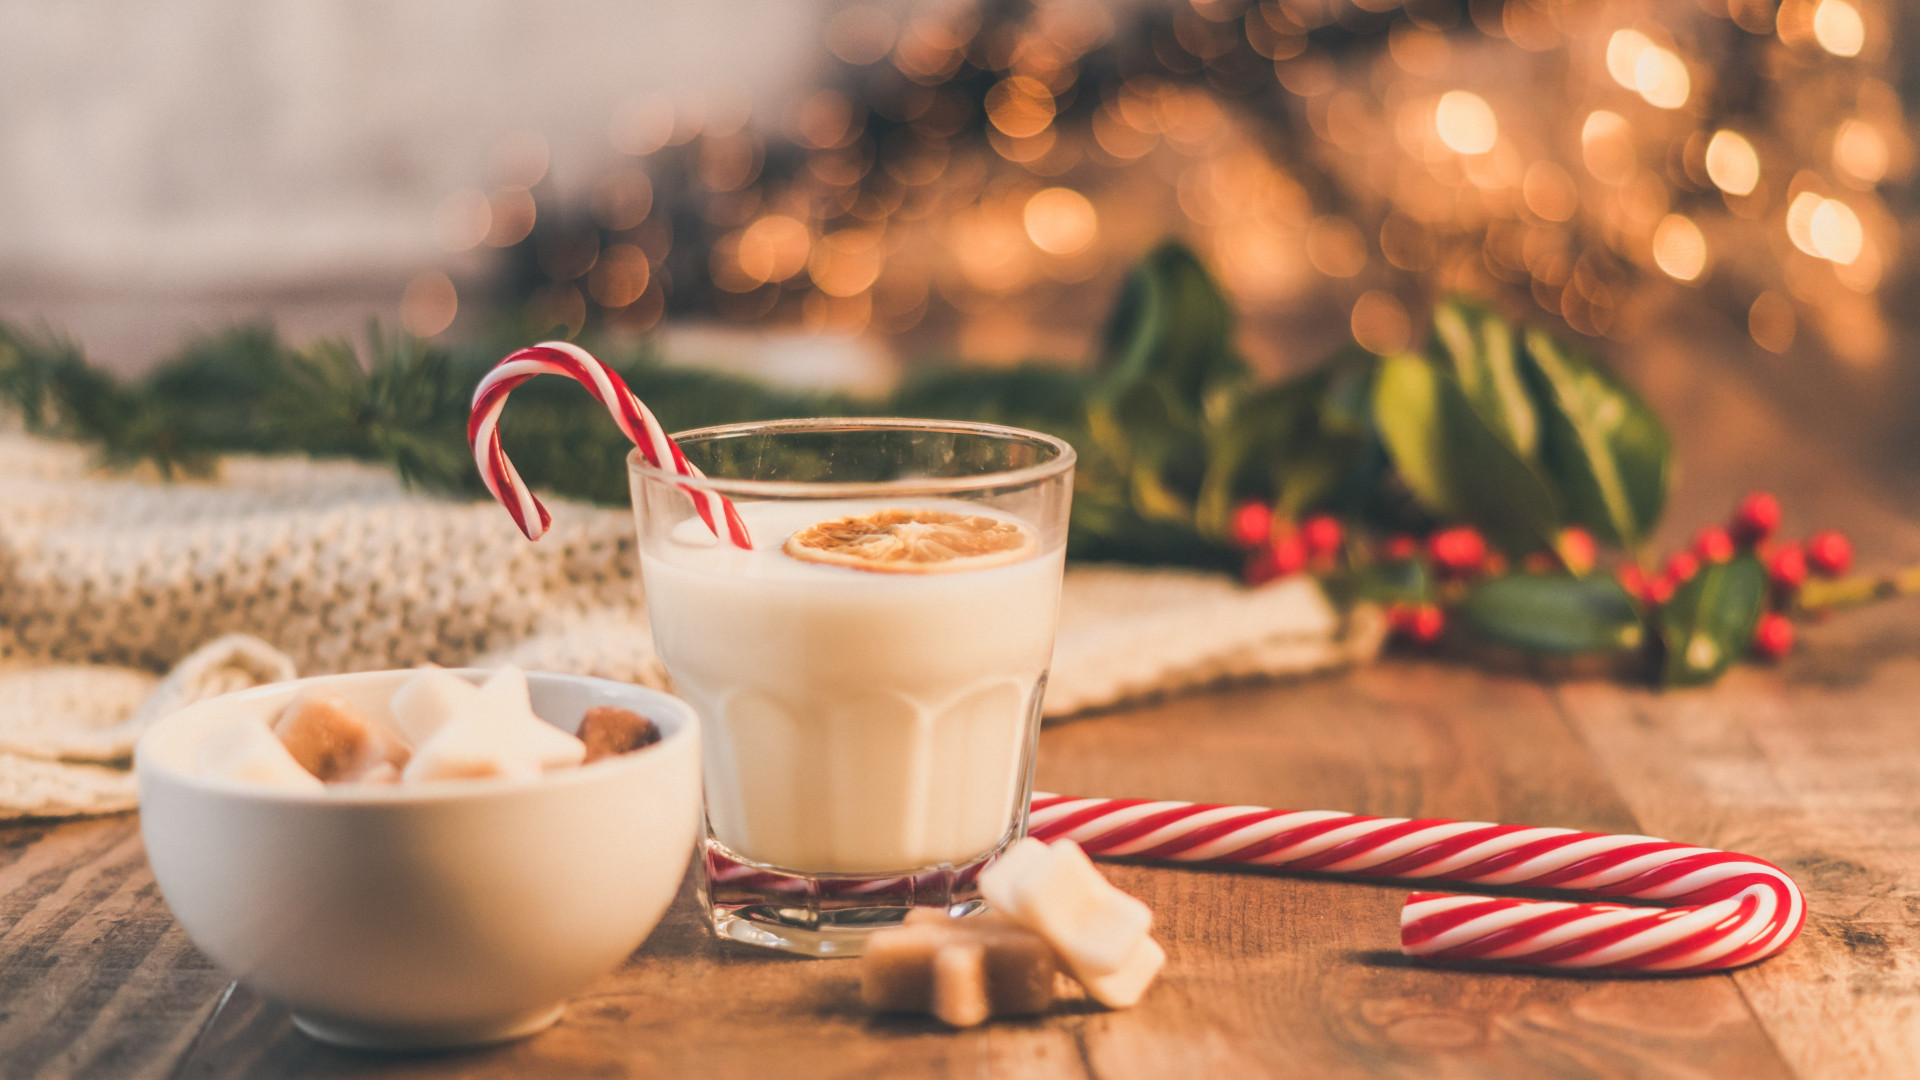 Seasonal Christmas sweets and cup of milk wallpaper 1920x1080